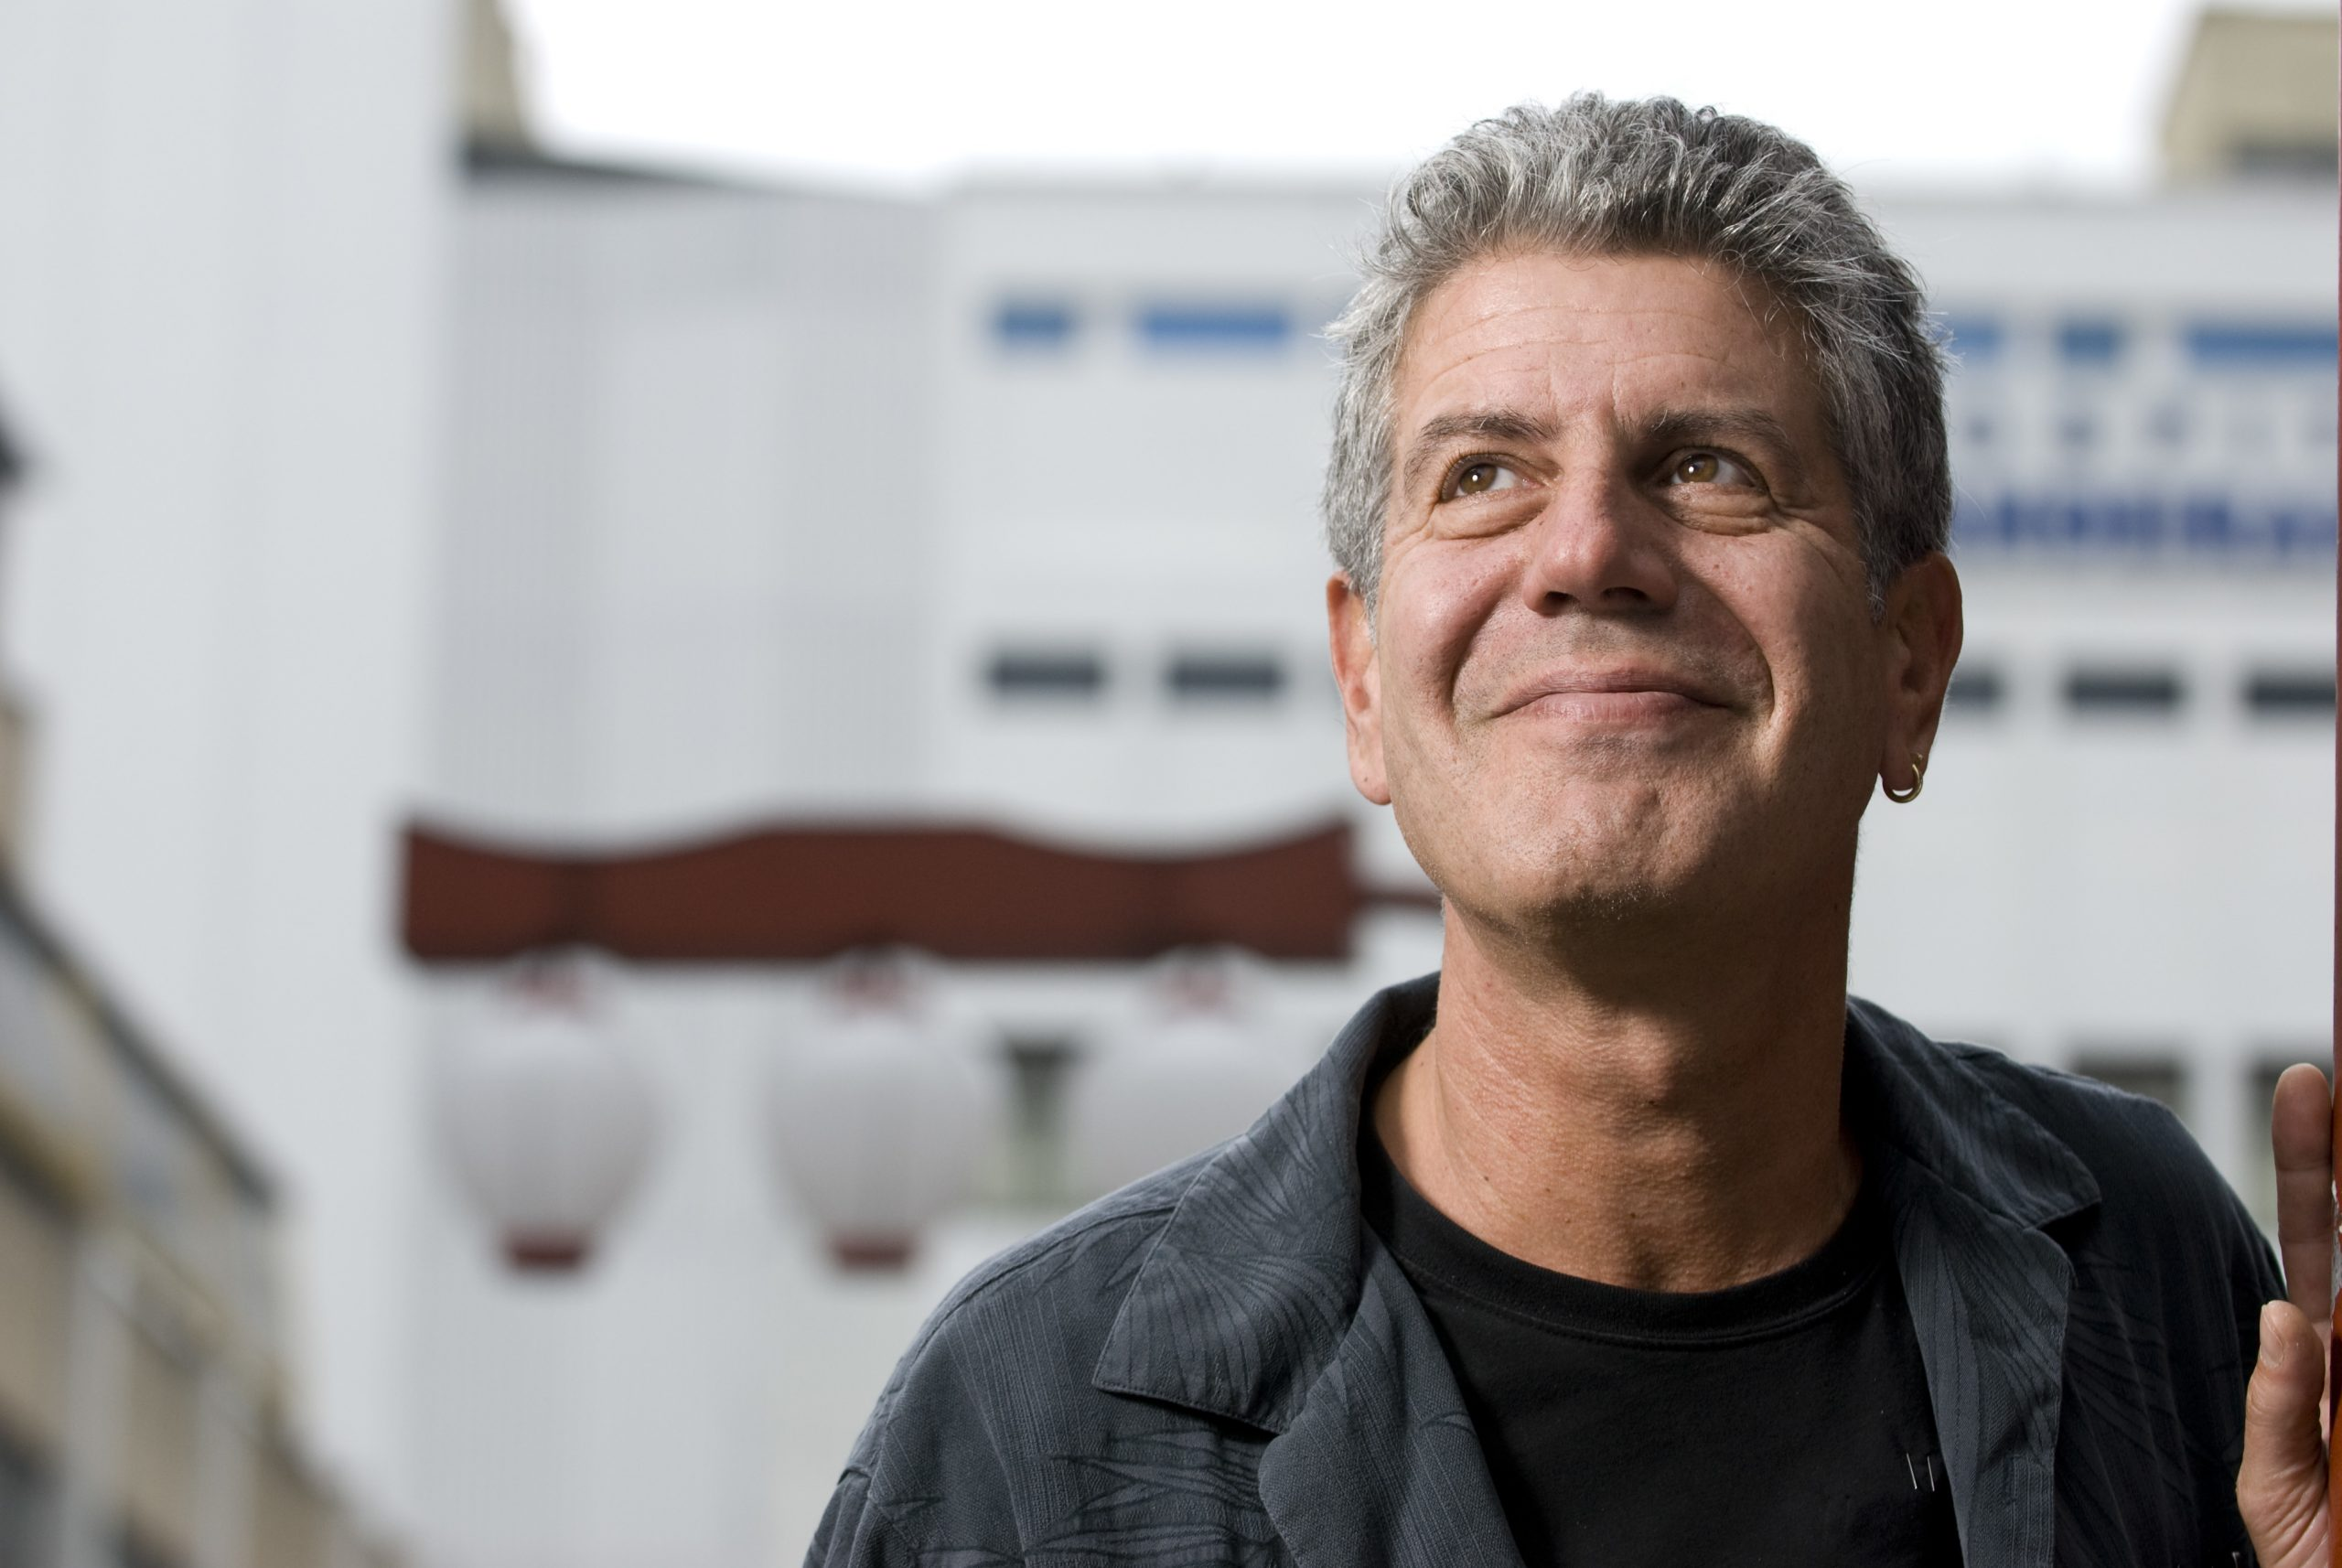 """Anthony Bourdain in the Liberdade area of Sao Paulo, Brazil. Bourdain hosts the TV Show """"No Reservations"""" for the Travel Channel."""